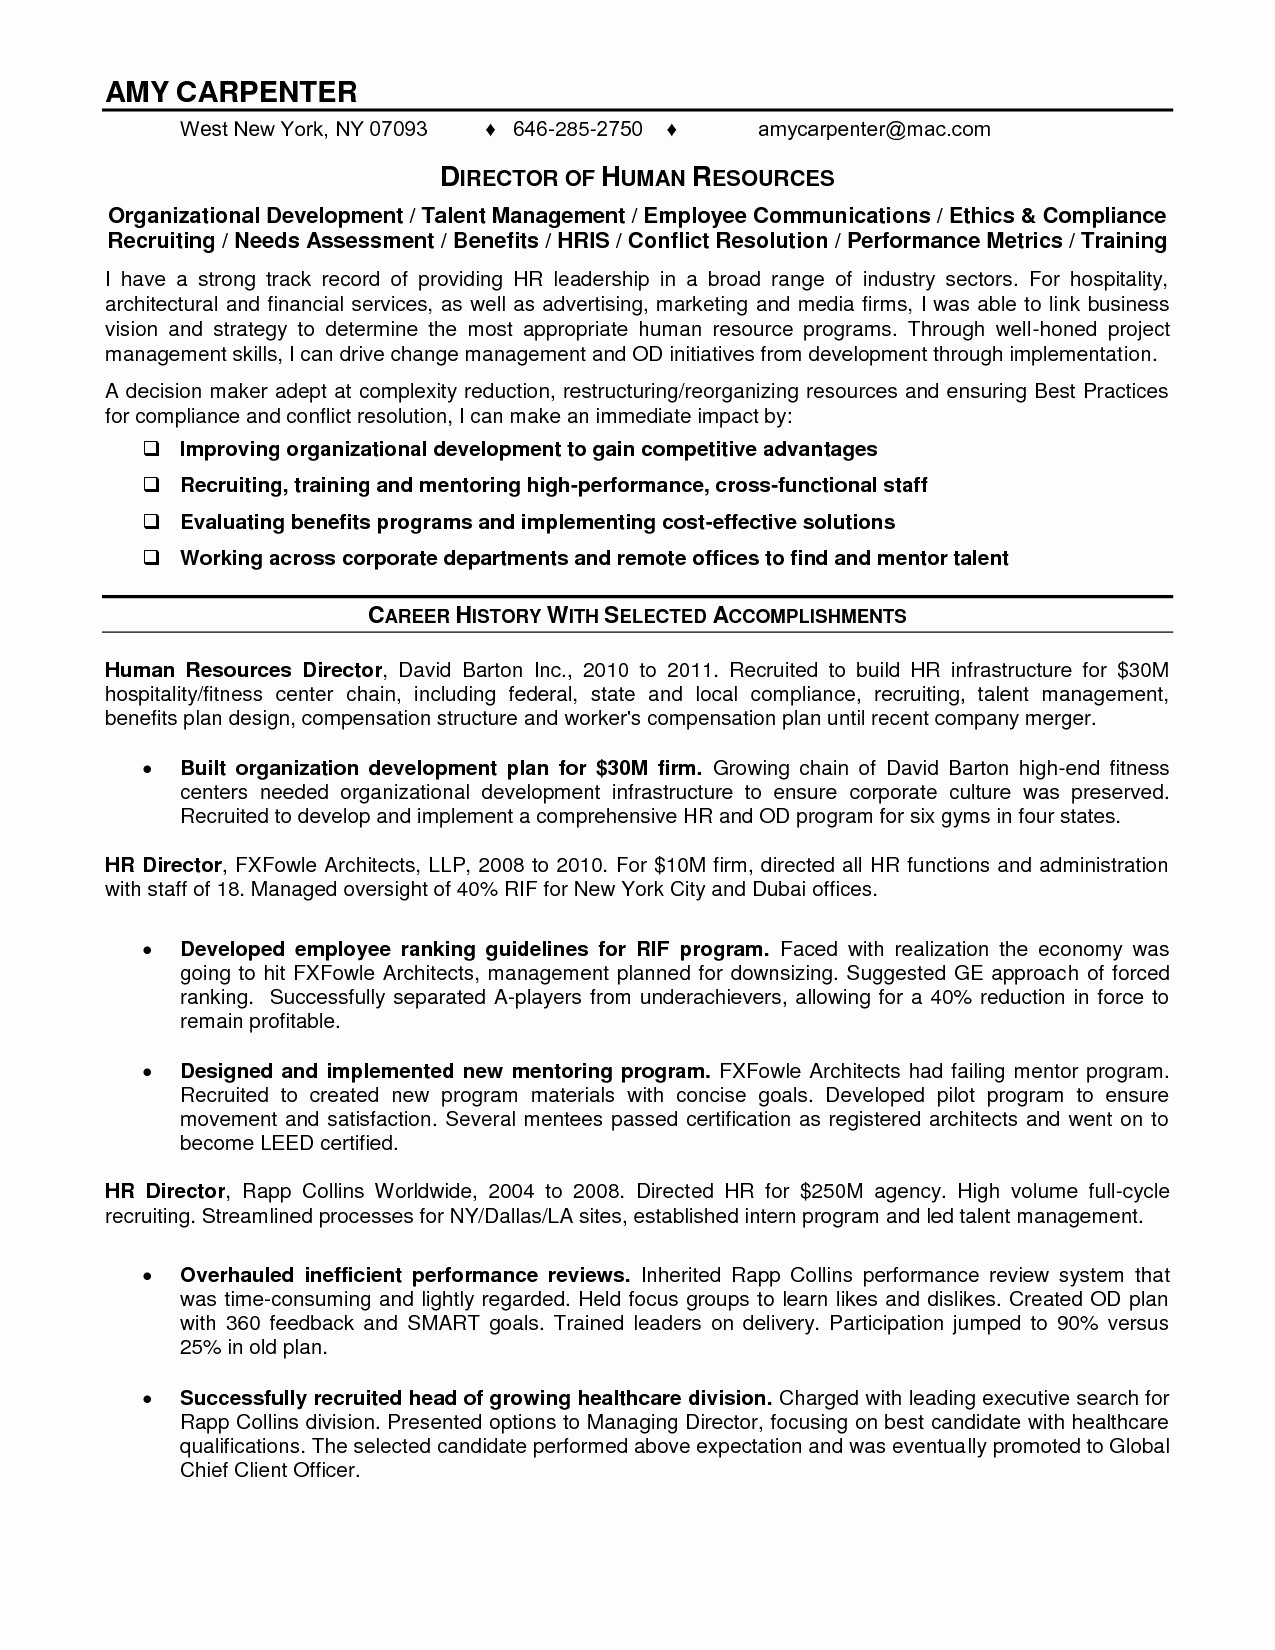 Attorney Termination Letter Template - Contract Termination Letter Sample Elegant Sample Business Resume